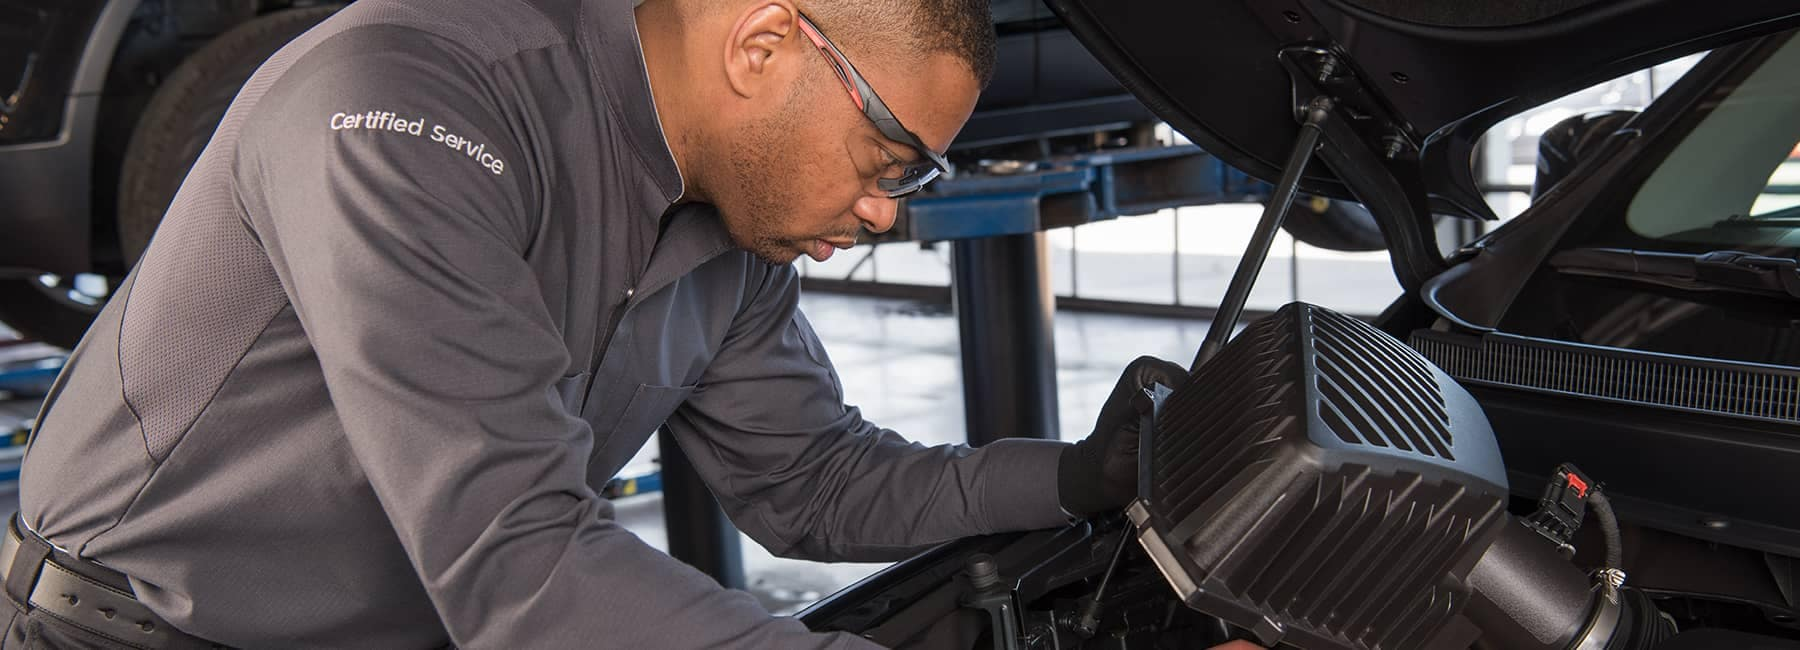 Certified technician inspects car engine